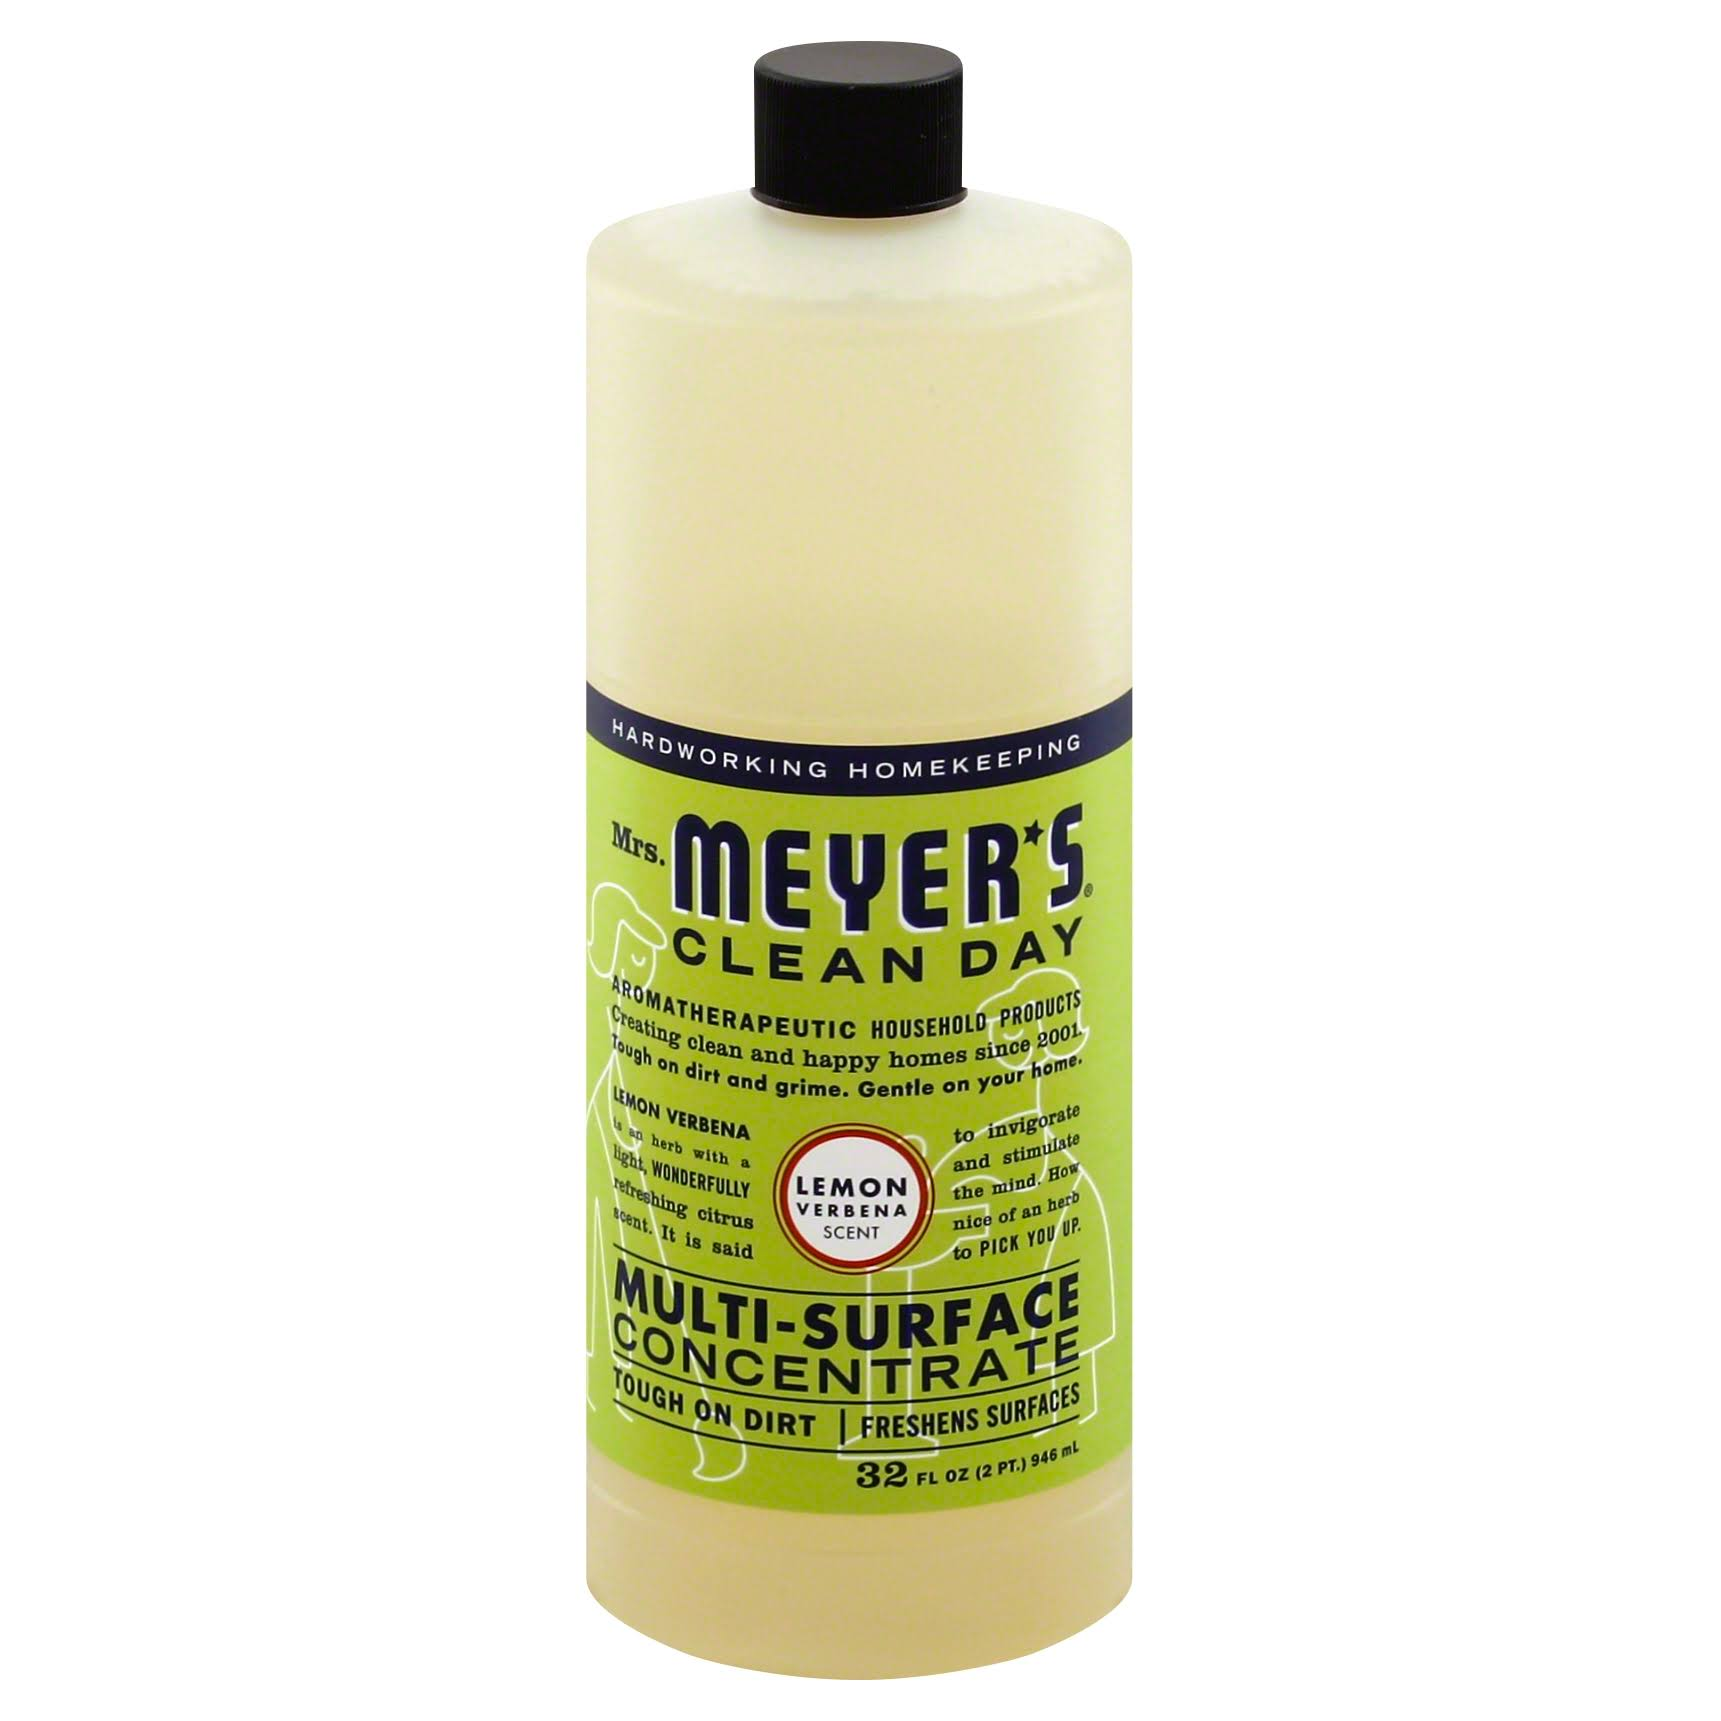 Mrs. Meyer's Clean Day All Purpose Cleaner - Lemon Verbena